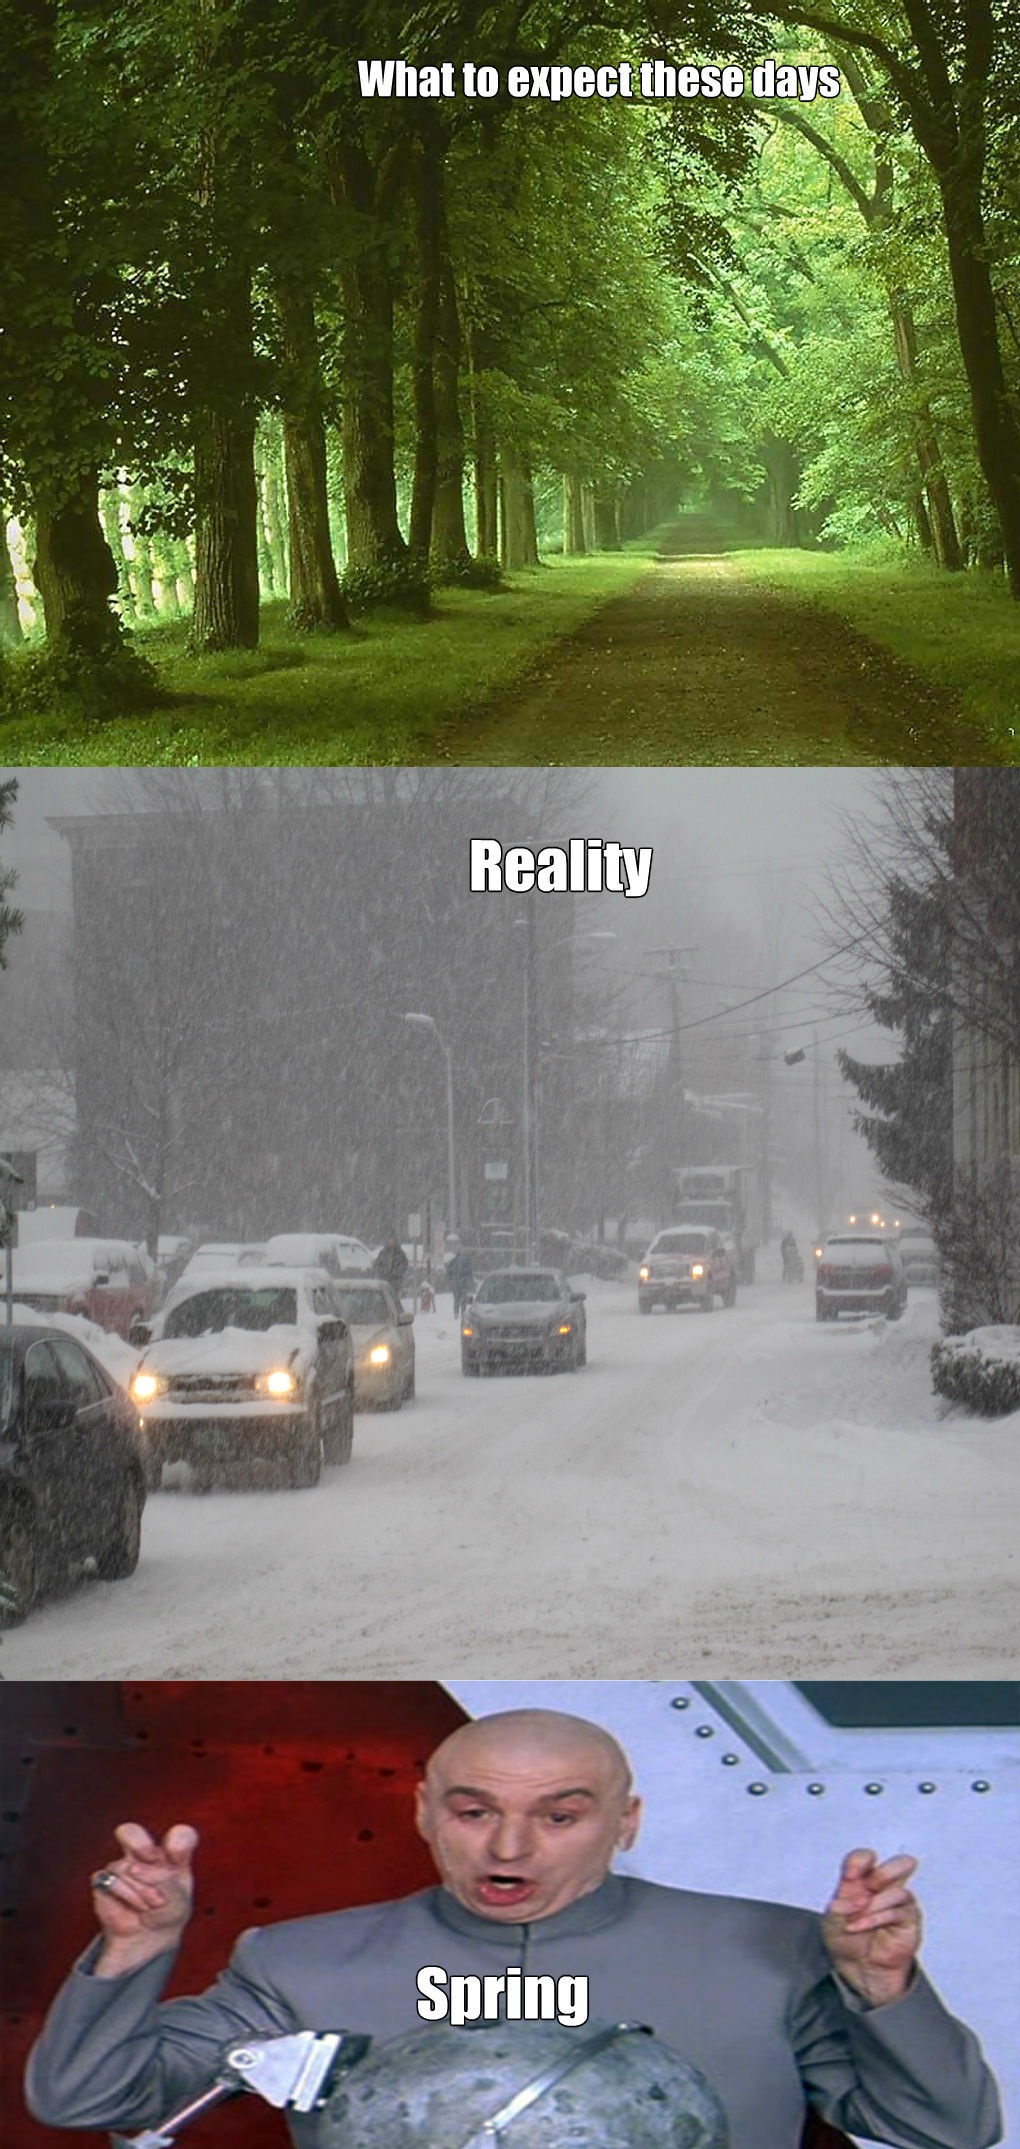 funny-picture-spring-expectations-reality